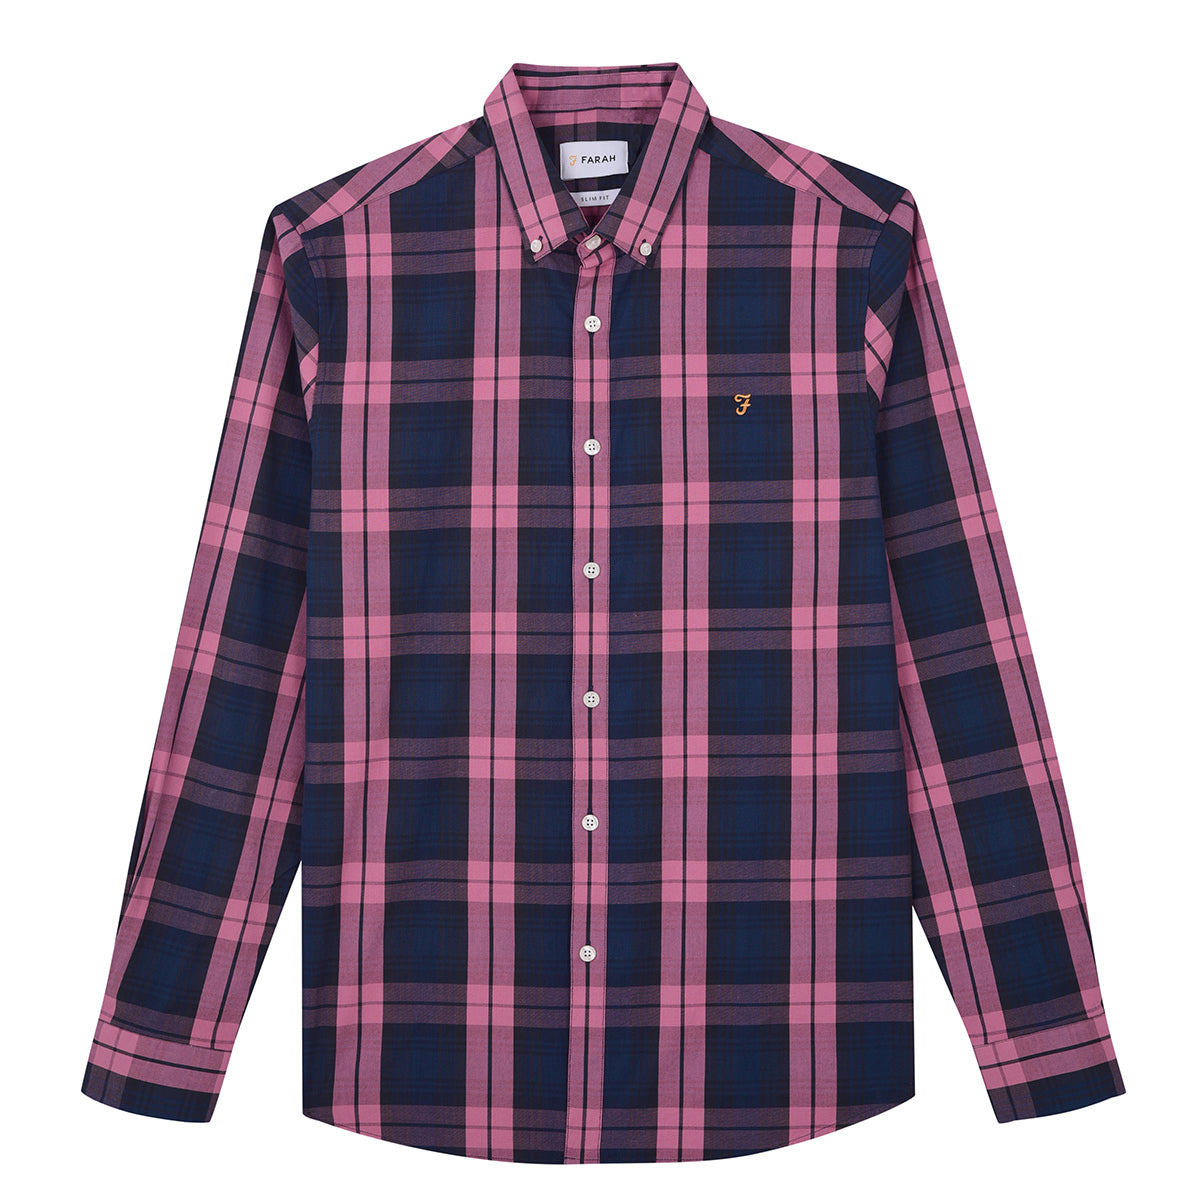 F4WF80C0 668 Farah Men's Slim Fit Check Shirt Tartan Dusty Rose for sale online ireland